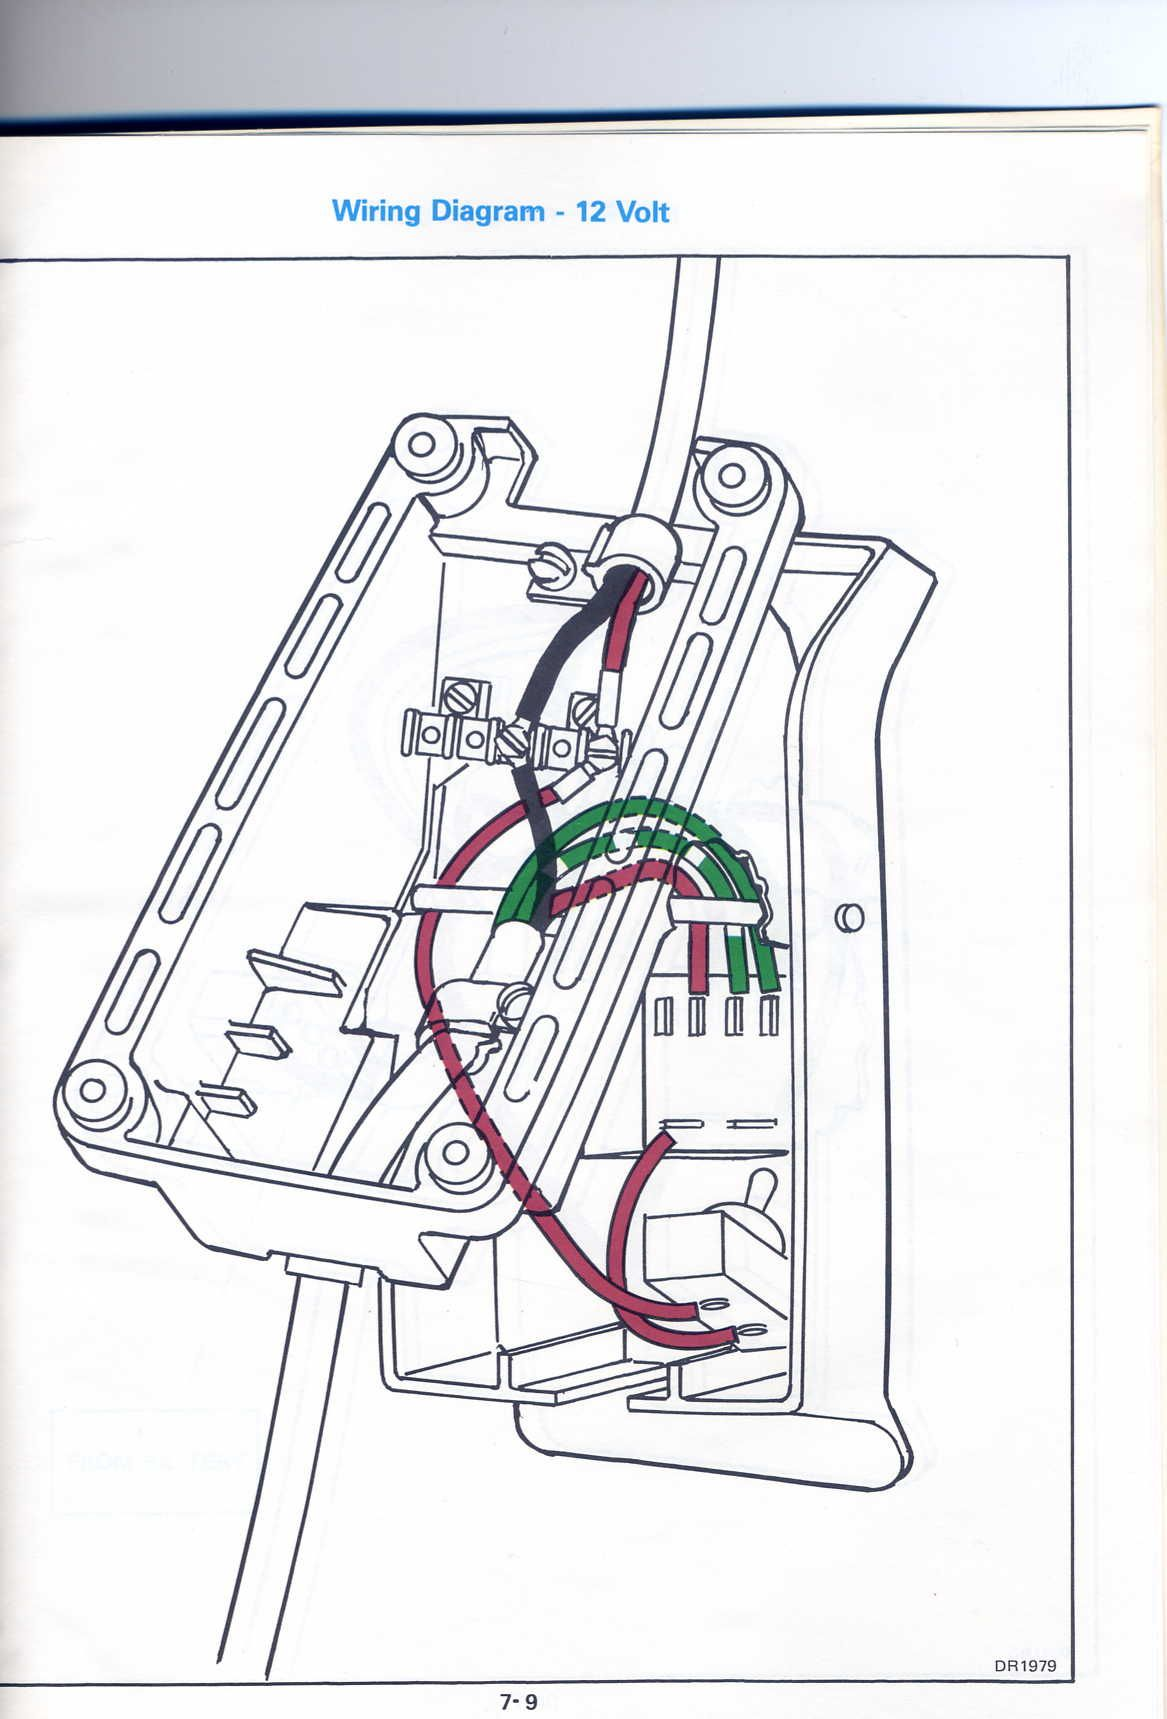 hight resolution of motorguide trolling motor wiring diagram trying to repair a friends 1986 johnson trolling motor model does anyone have a wiring diagram design